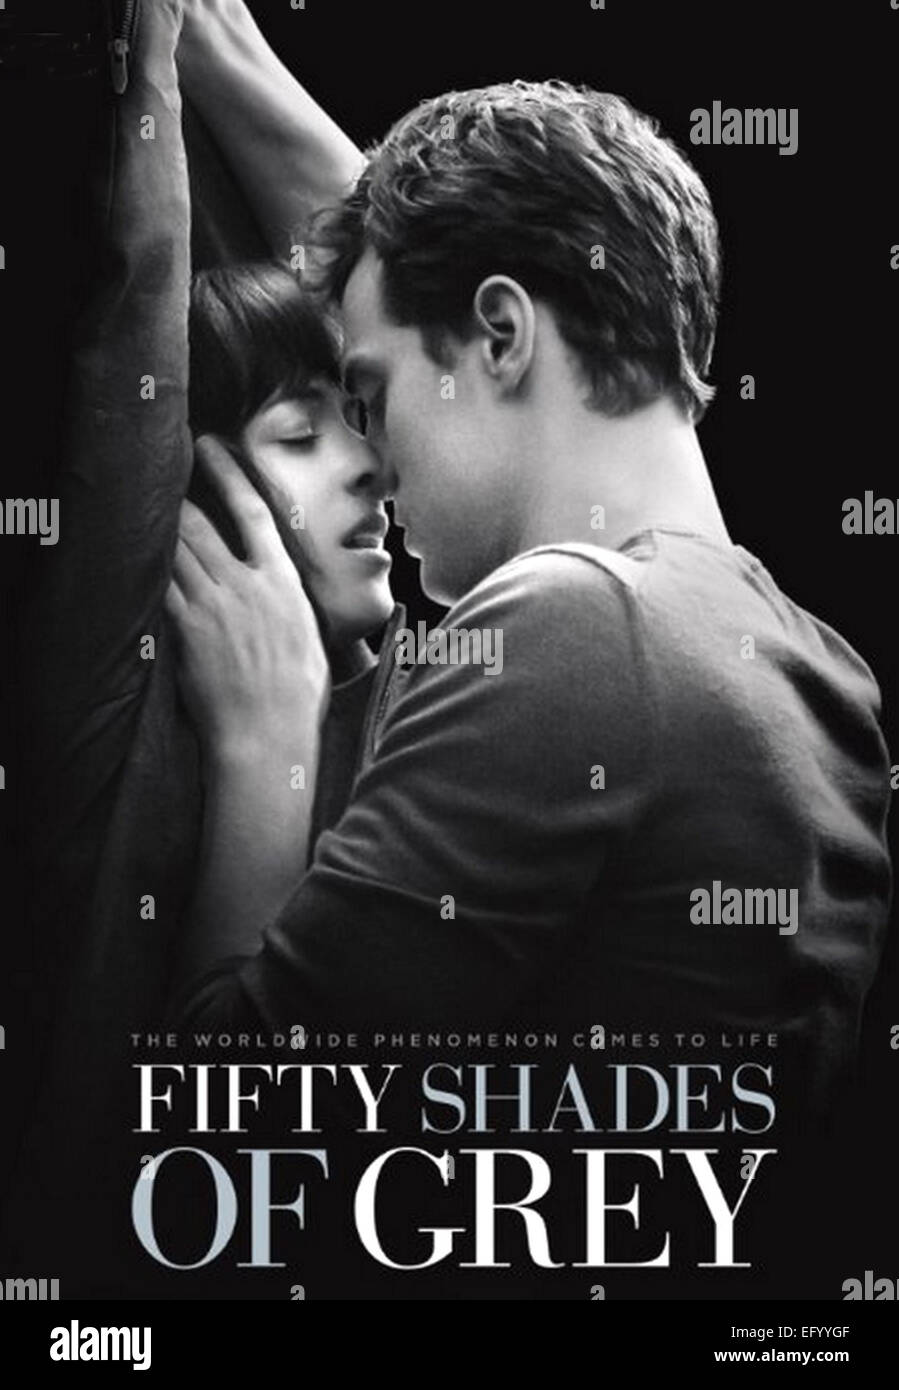 50 SHADES OF GREY  Poster for 2015 Focus Features film with Dakota Johnson and Jamie Dornan - Stock Image